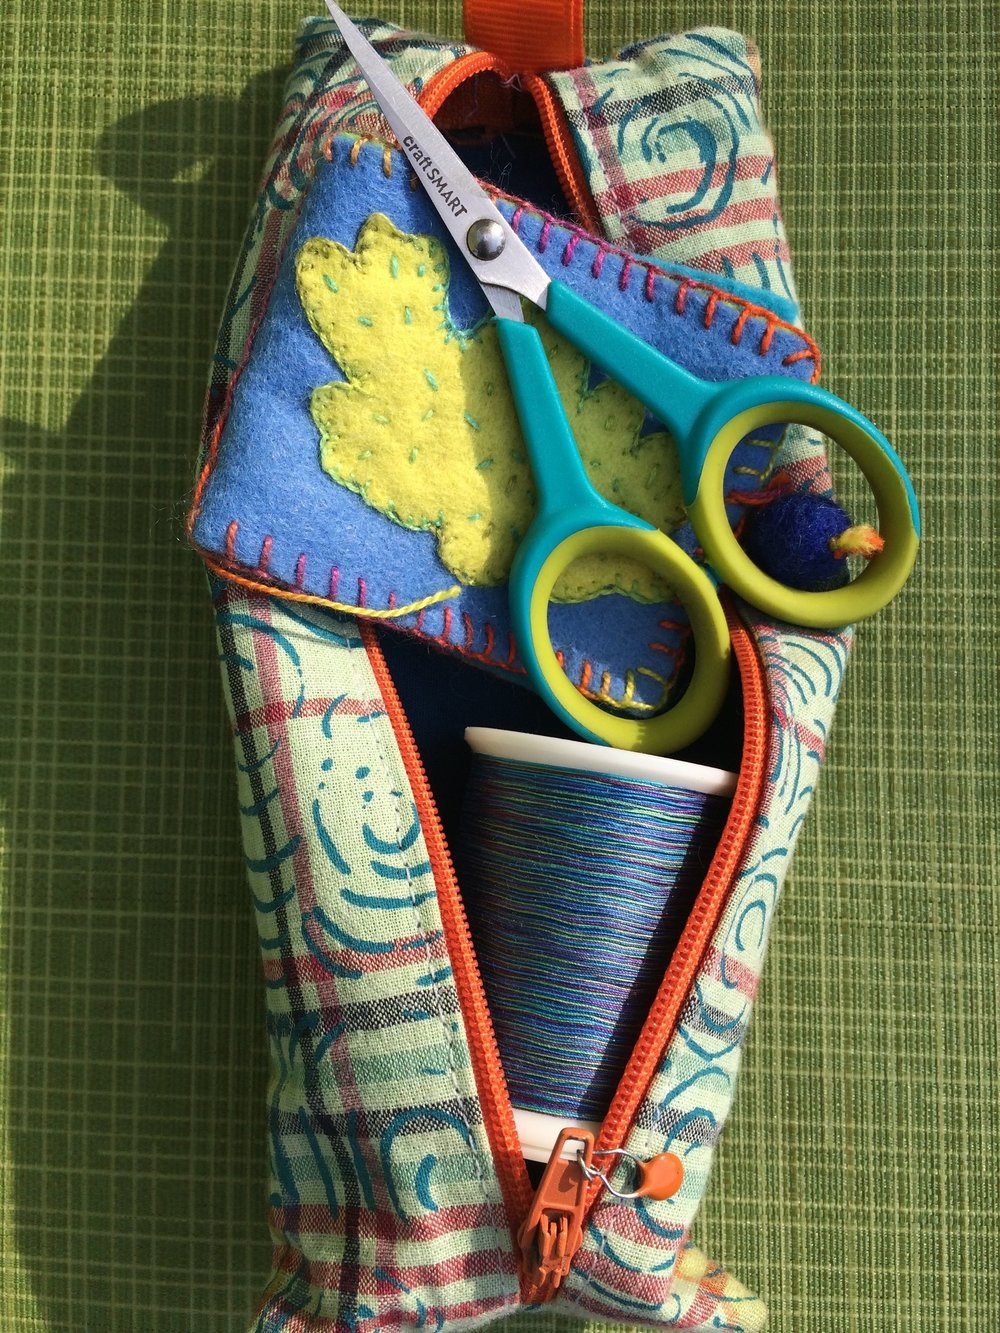 My portable stitch kit. (Needles live inside the felt folder, also handmade by me.)